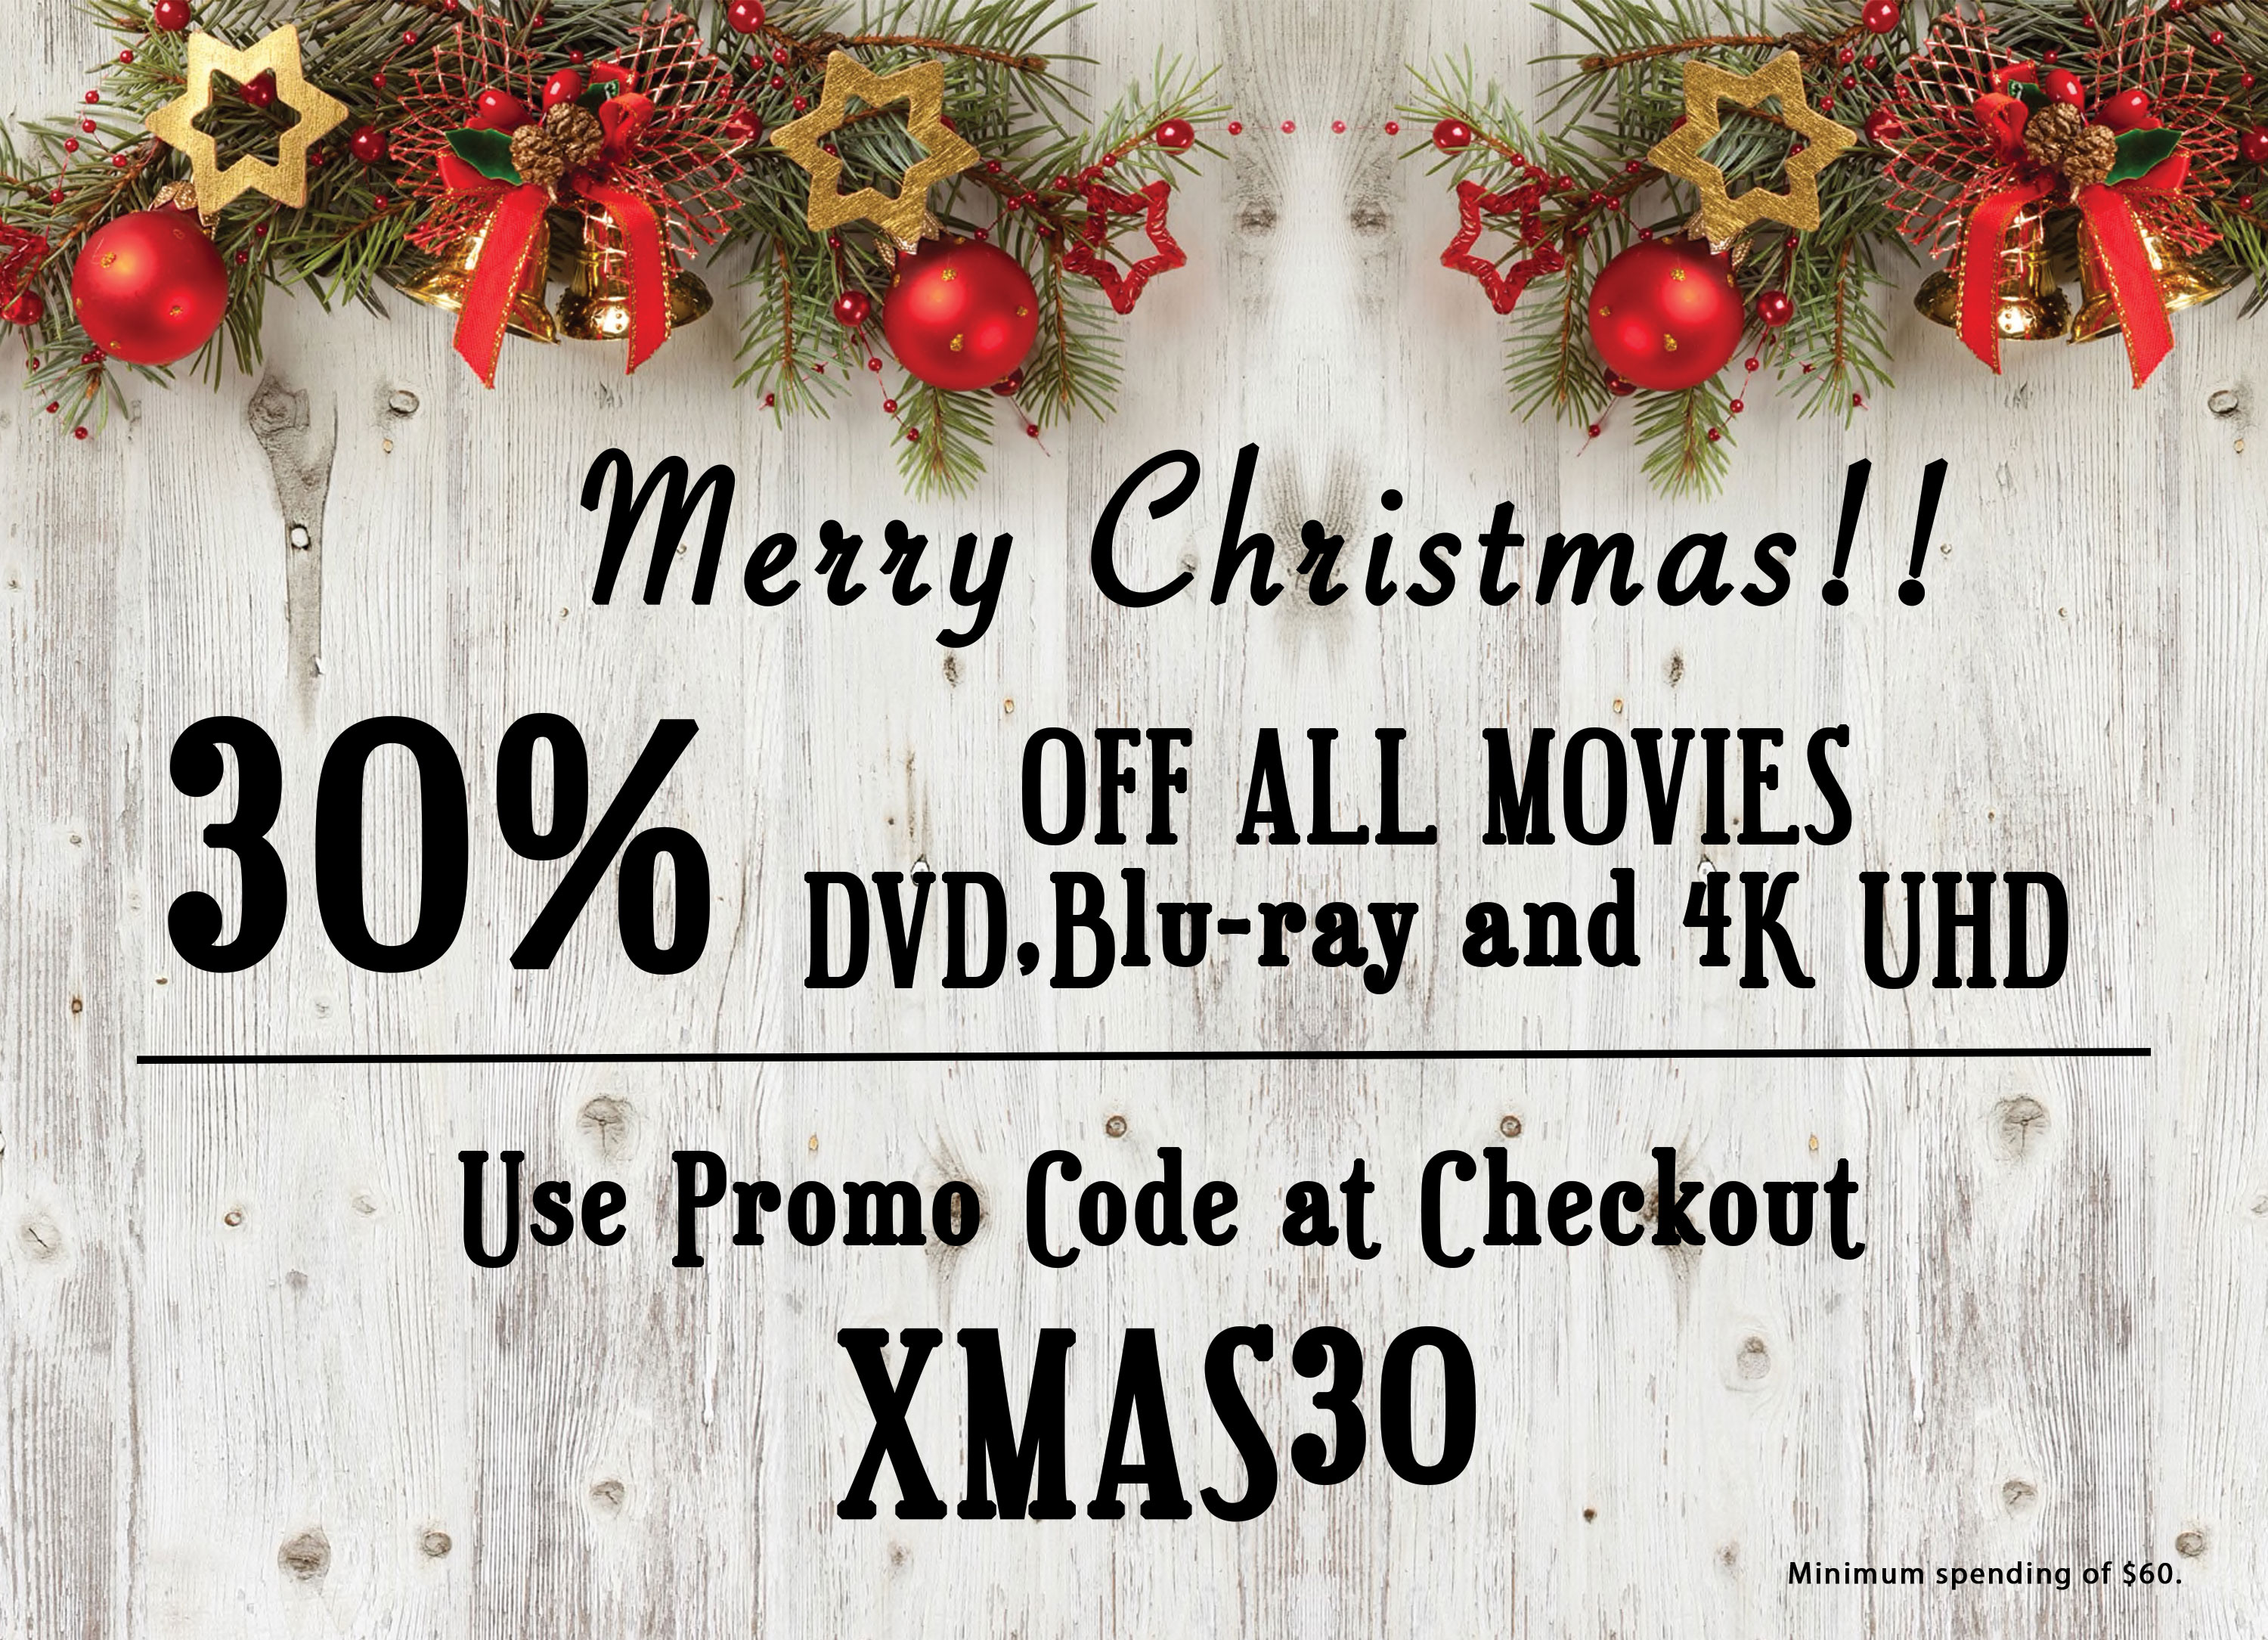 Poh Kim | Online Shopping for DVD, Blu-ray, 3D and 4K UHD - Poh Kim ...